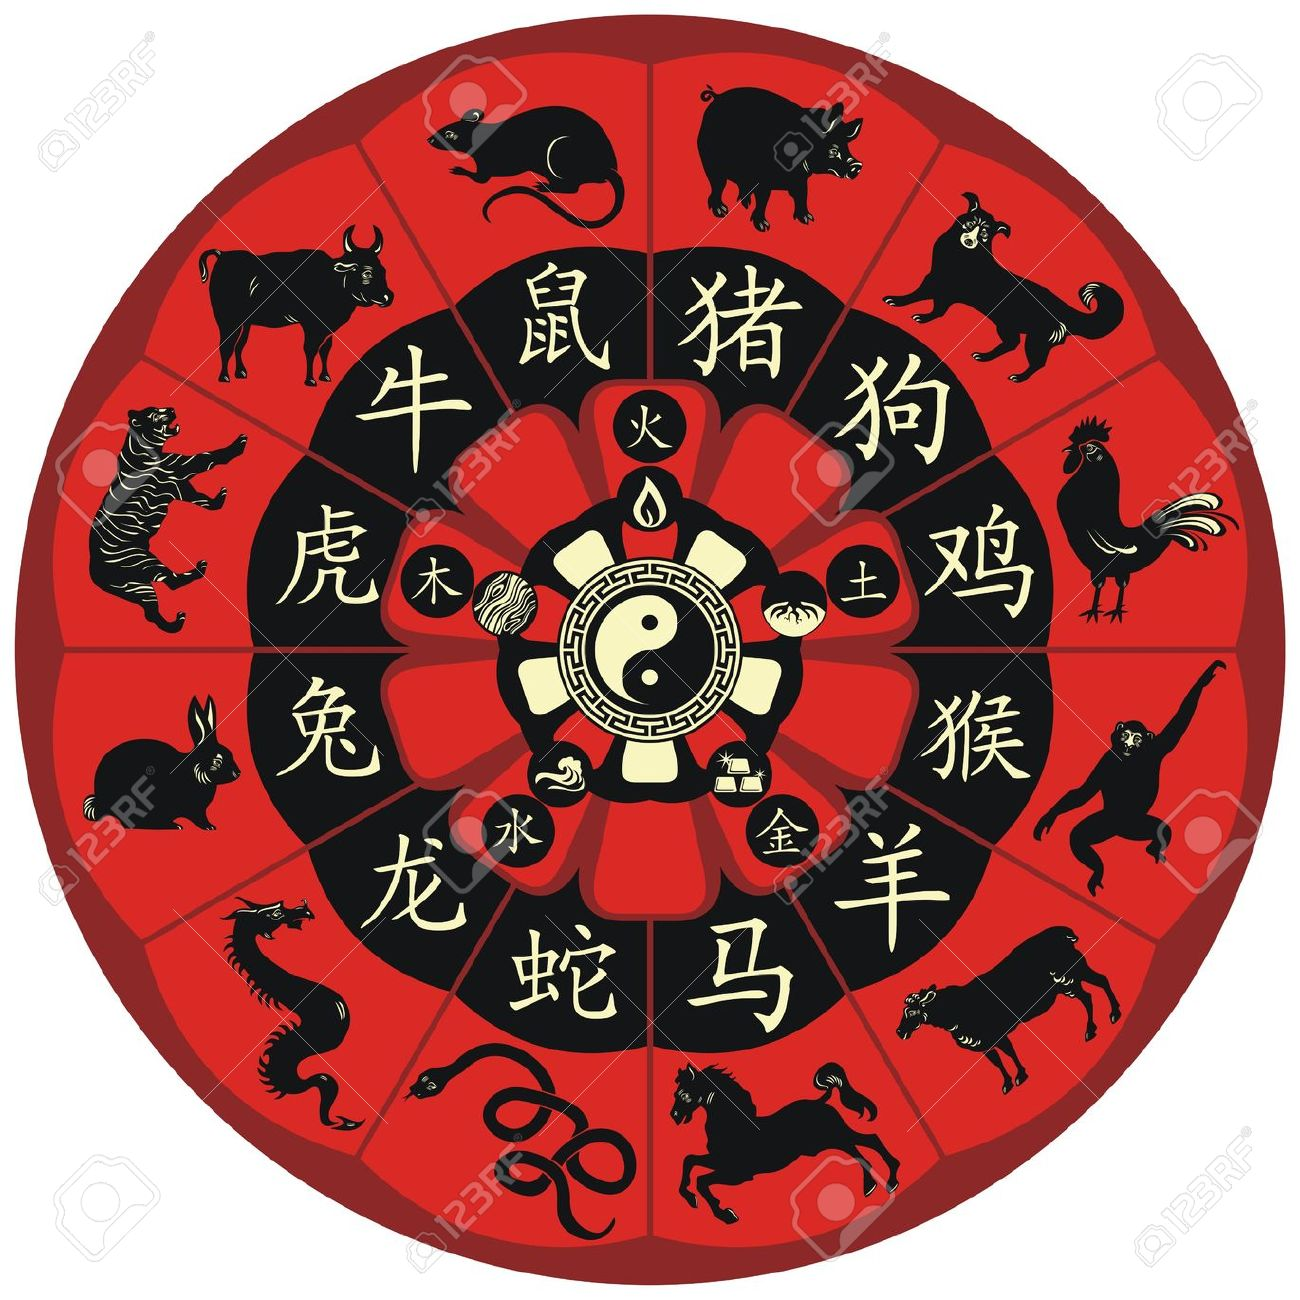 Chinese Zodiac Wheel With Signs And The Five Elements Symbols.